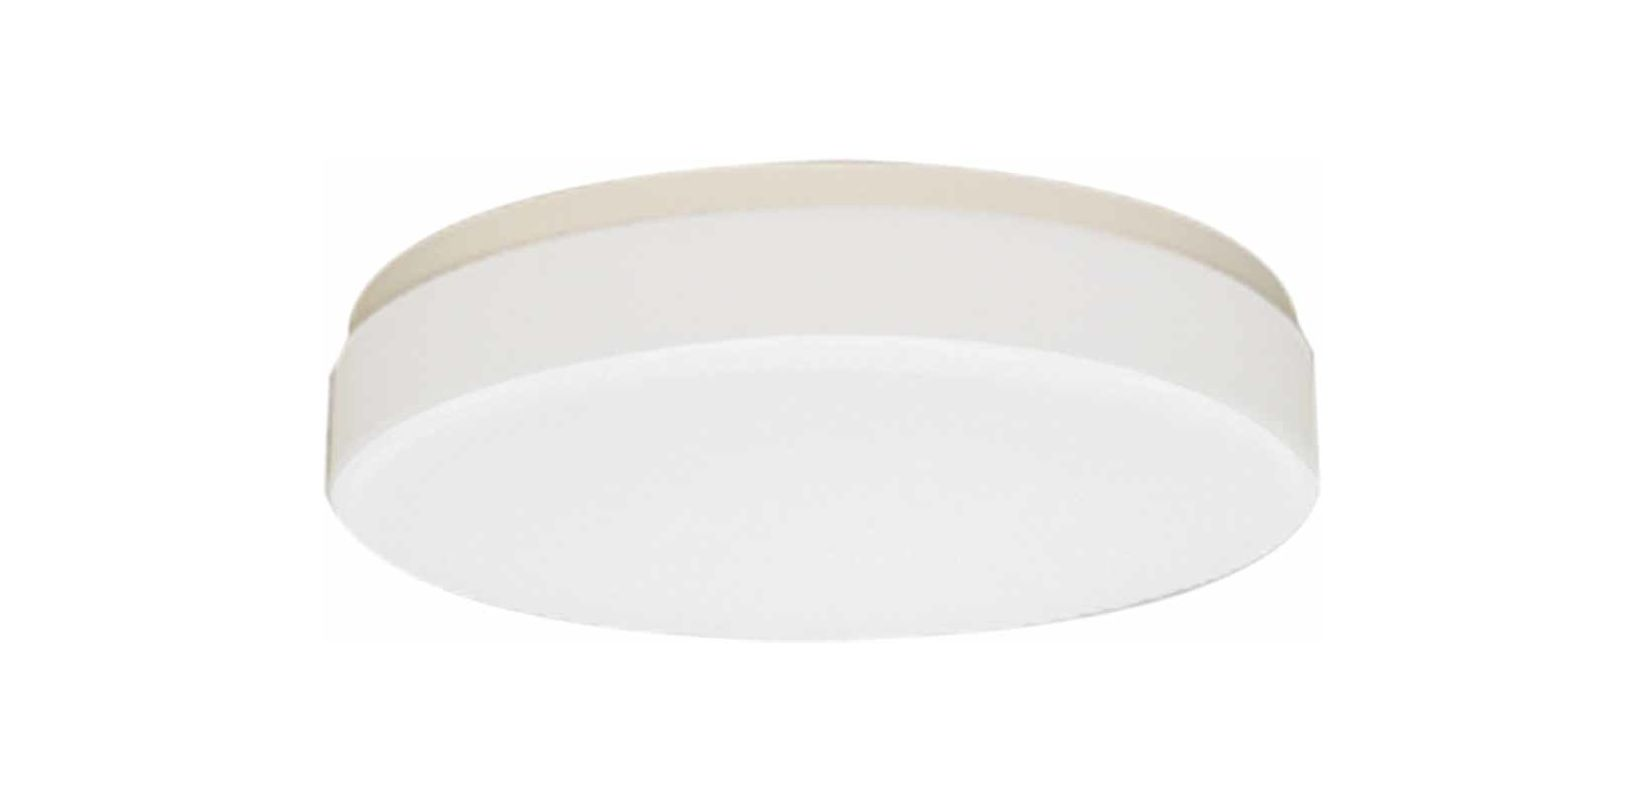 Volume Lighting V6222 1 Light Flush Mount Ceiling Fixture with Round